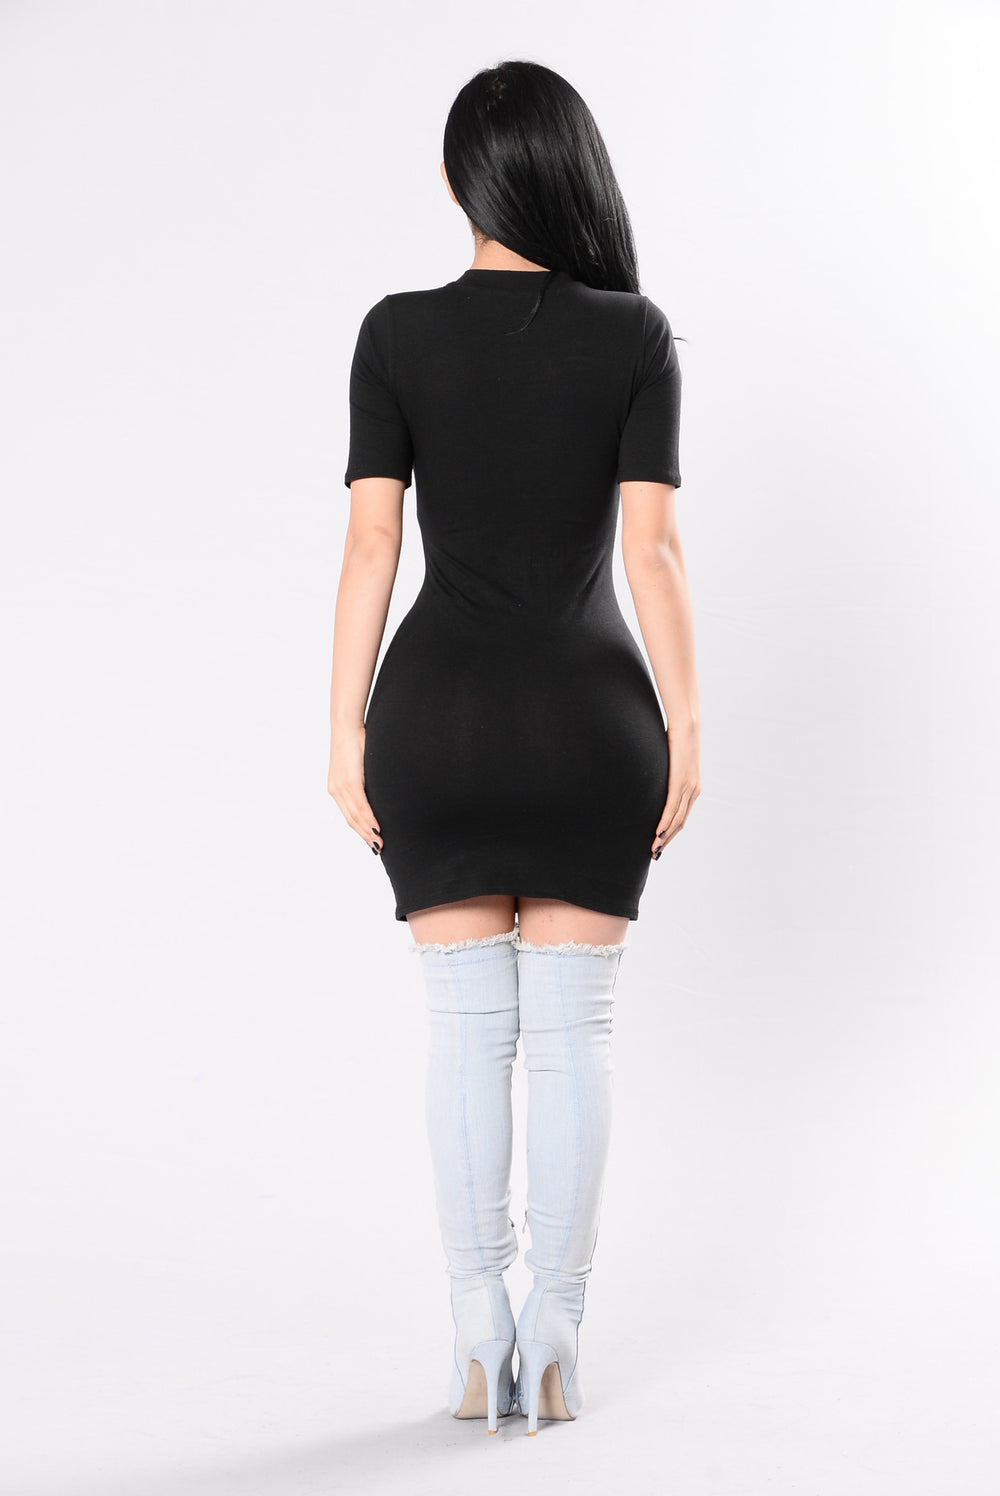 Rising Like Smoke Dress - Black